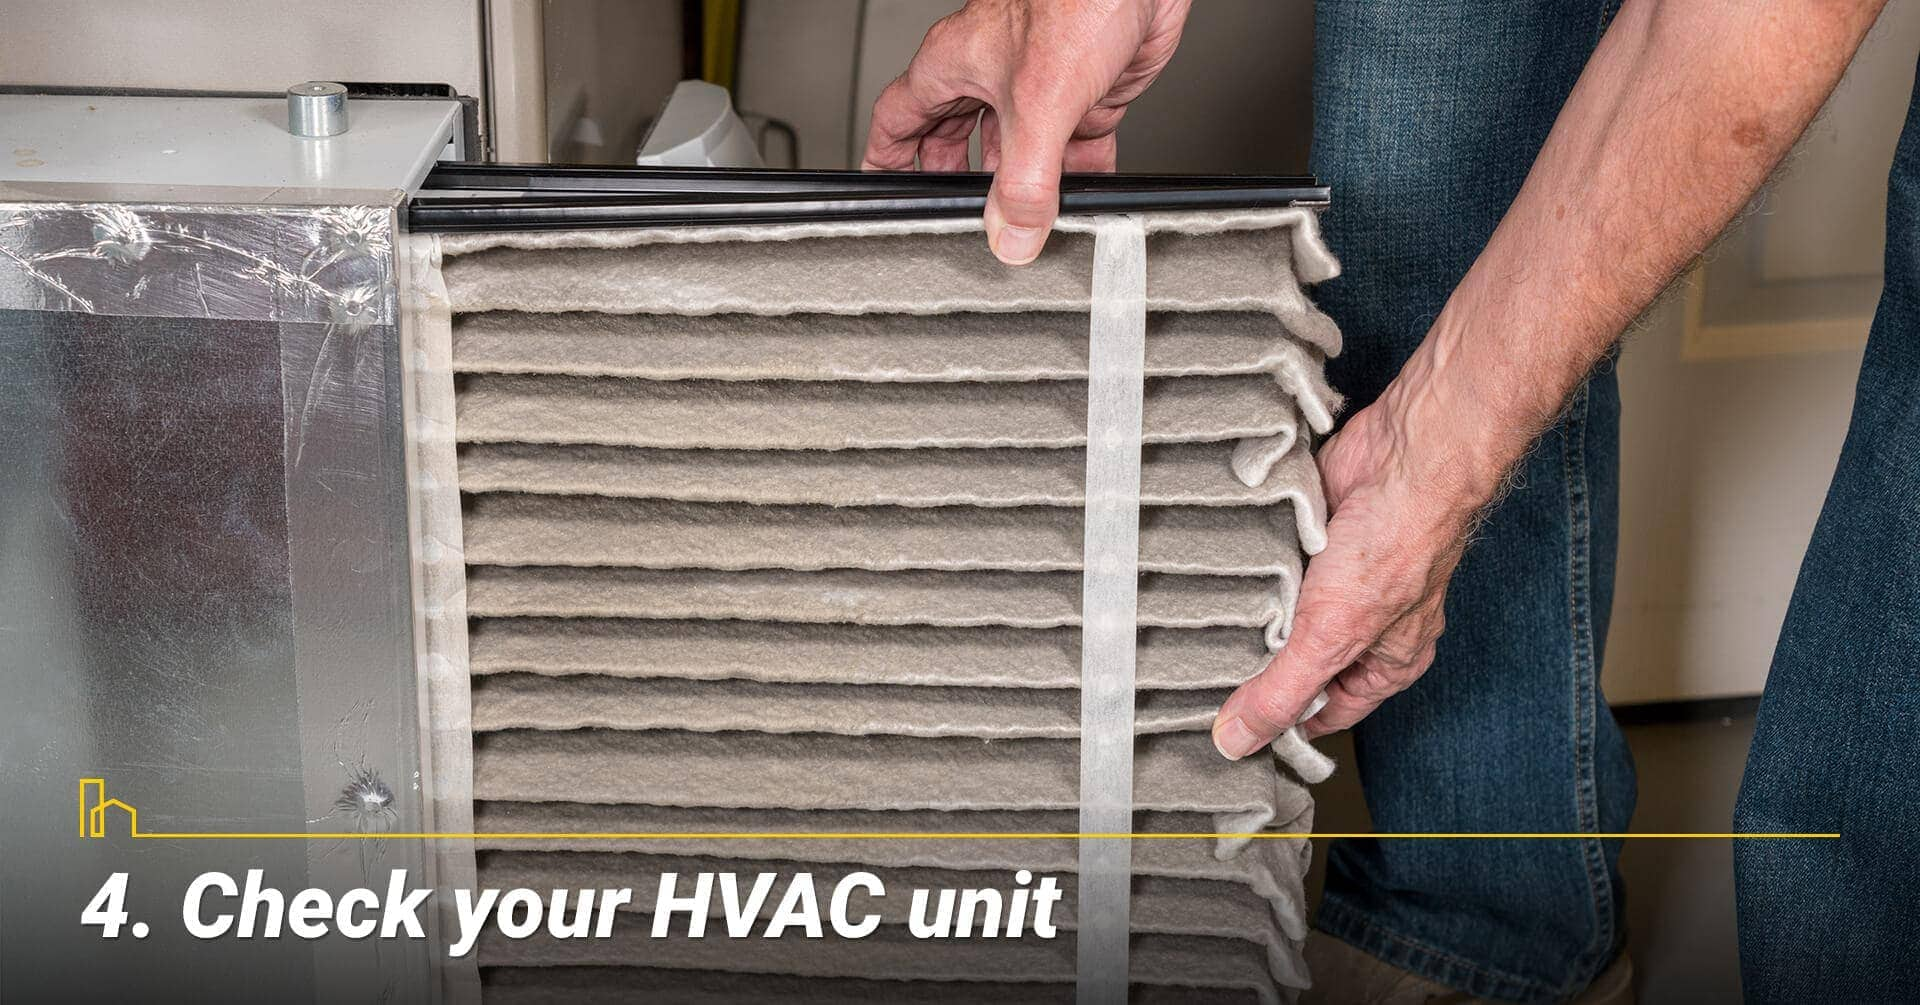 Check your HVAC unit, change your air filter